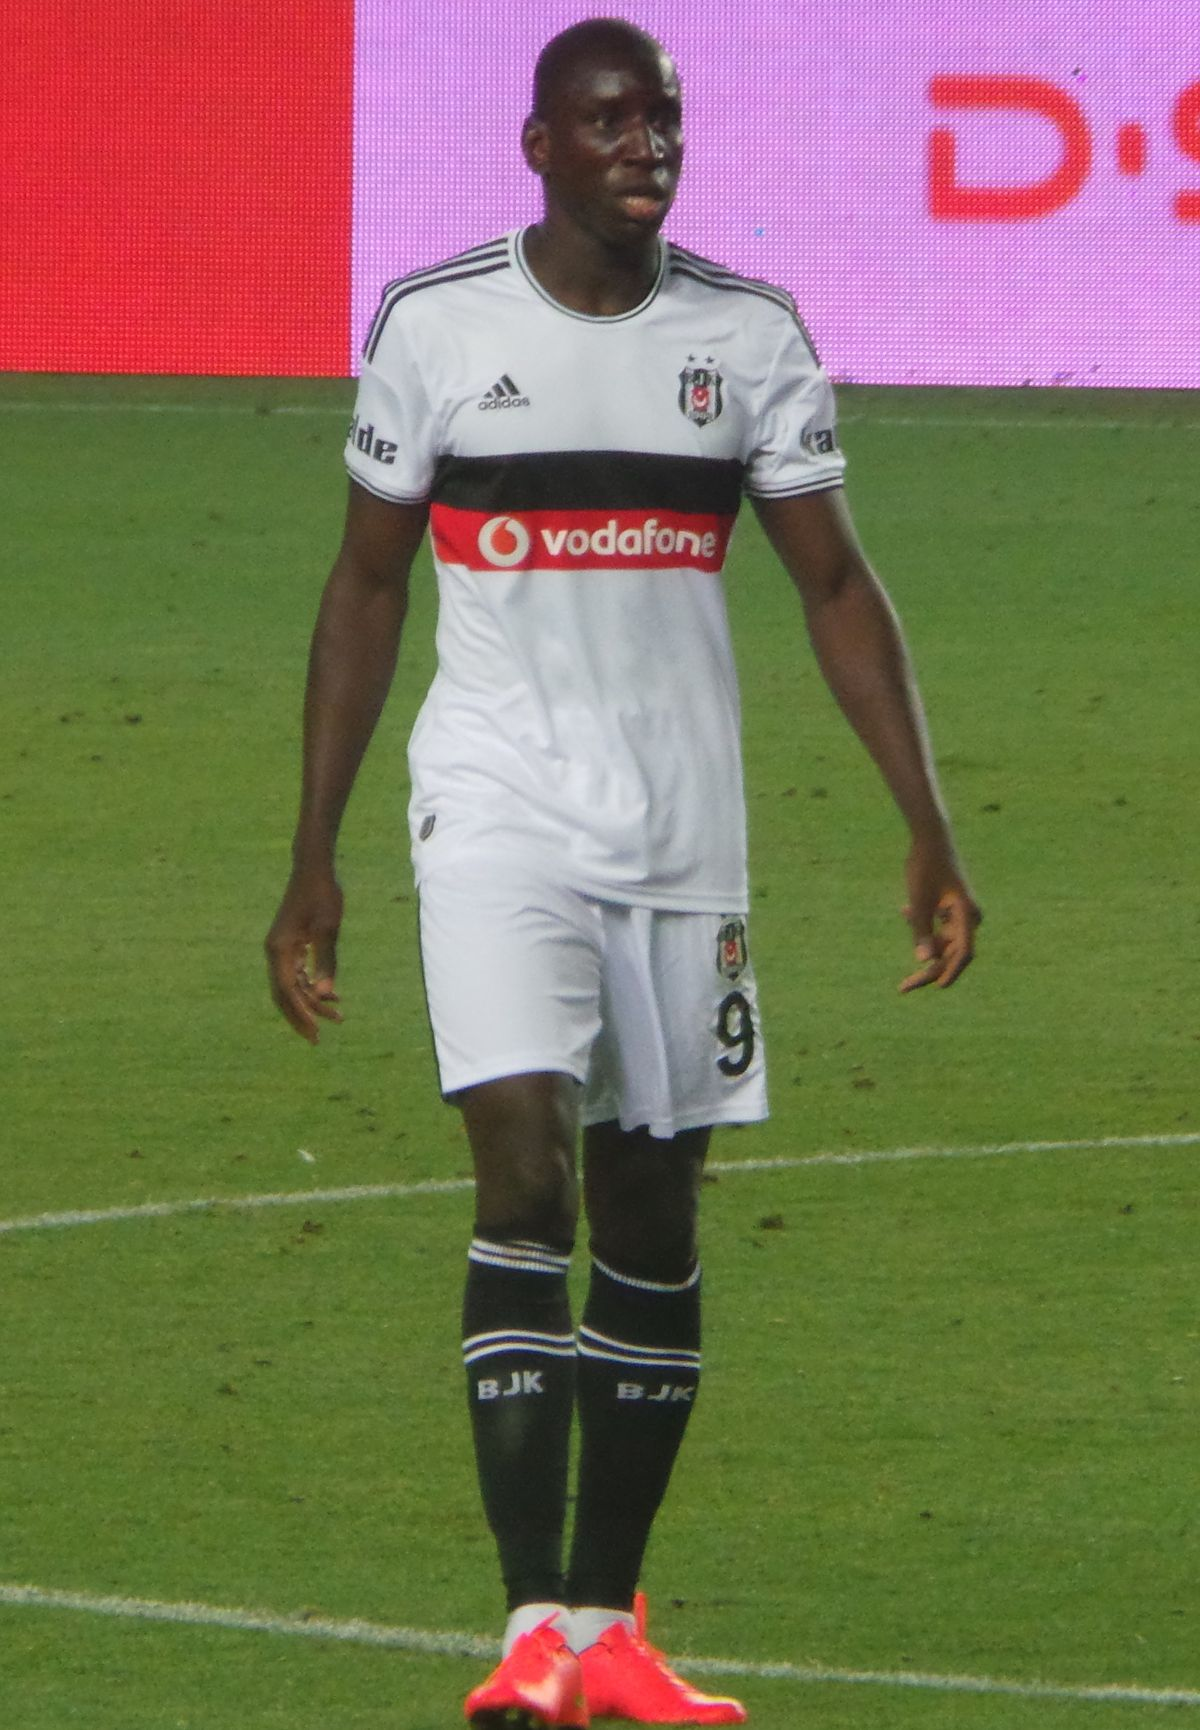 ba demba chelsea football bjk wiki 1985 player wikipedia french beşiktaş facts match playing france father